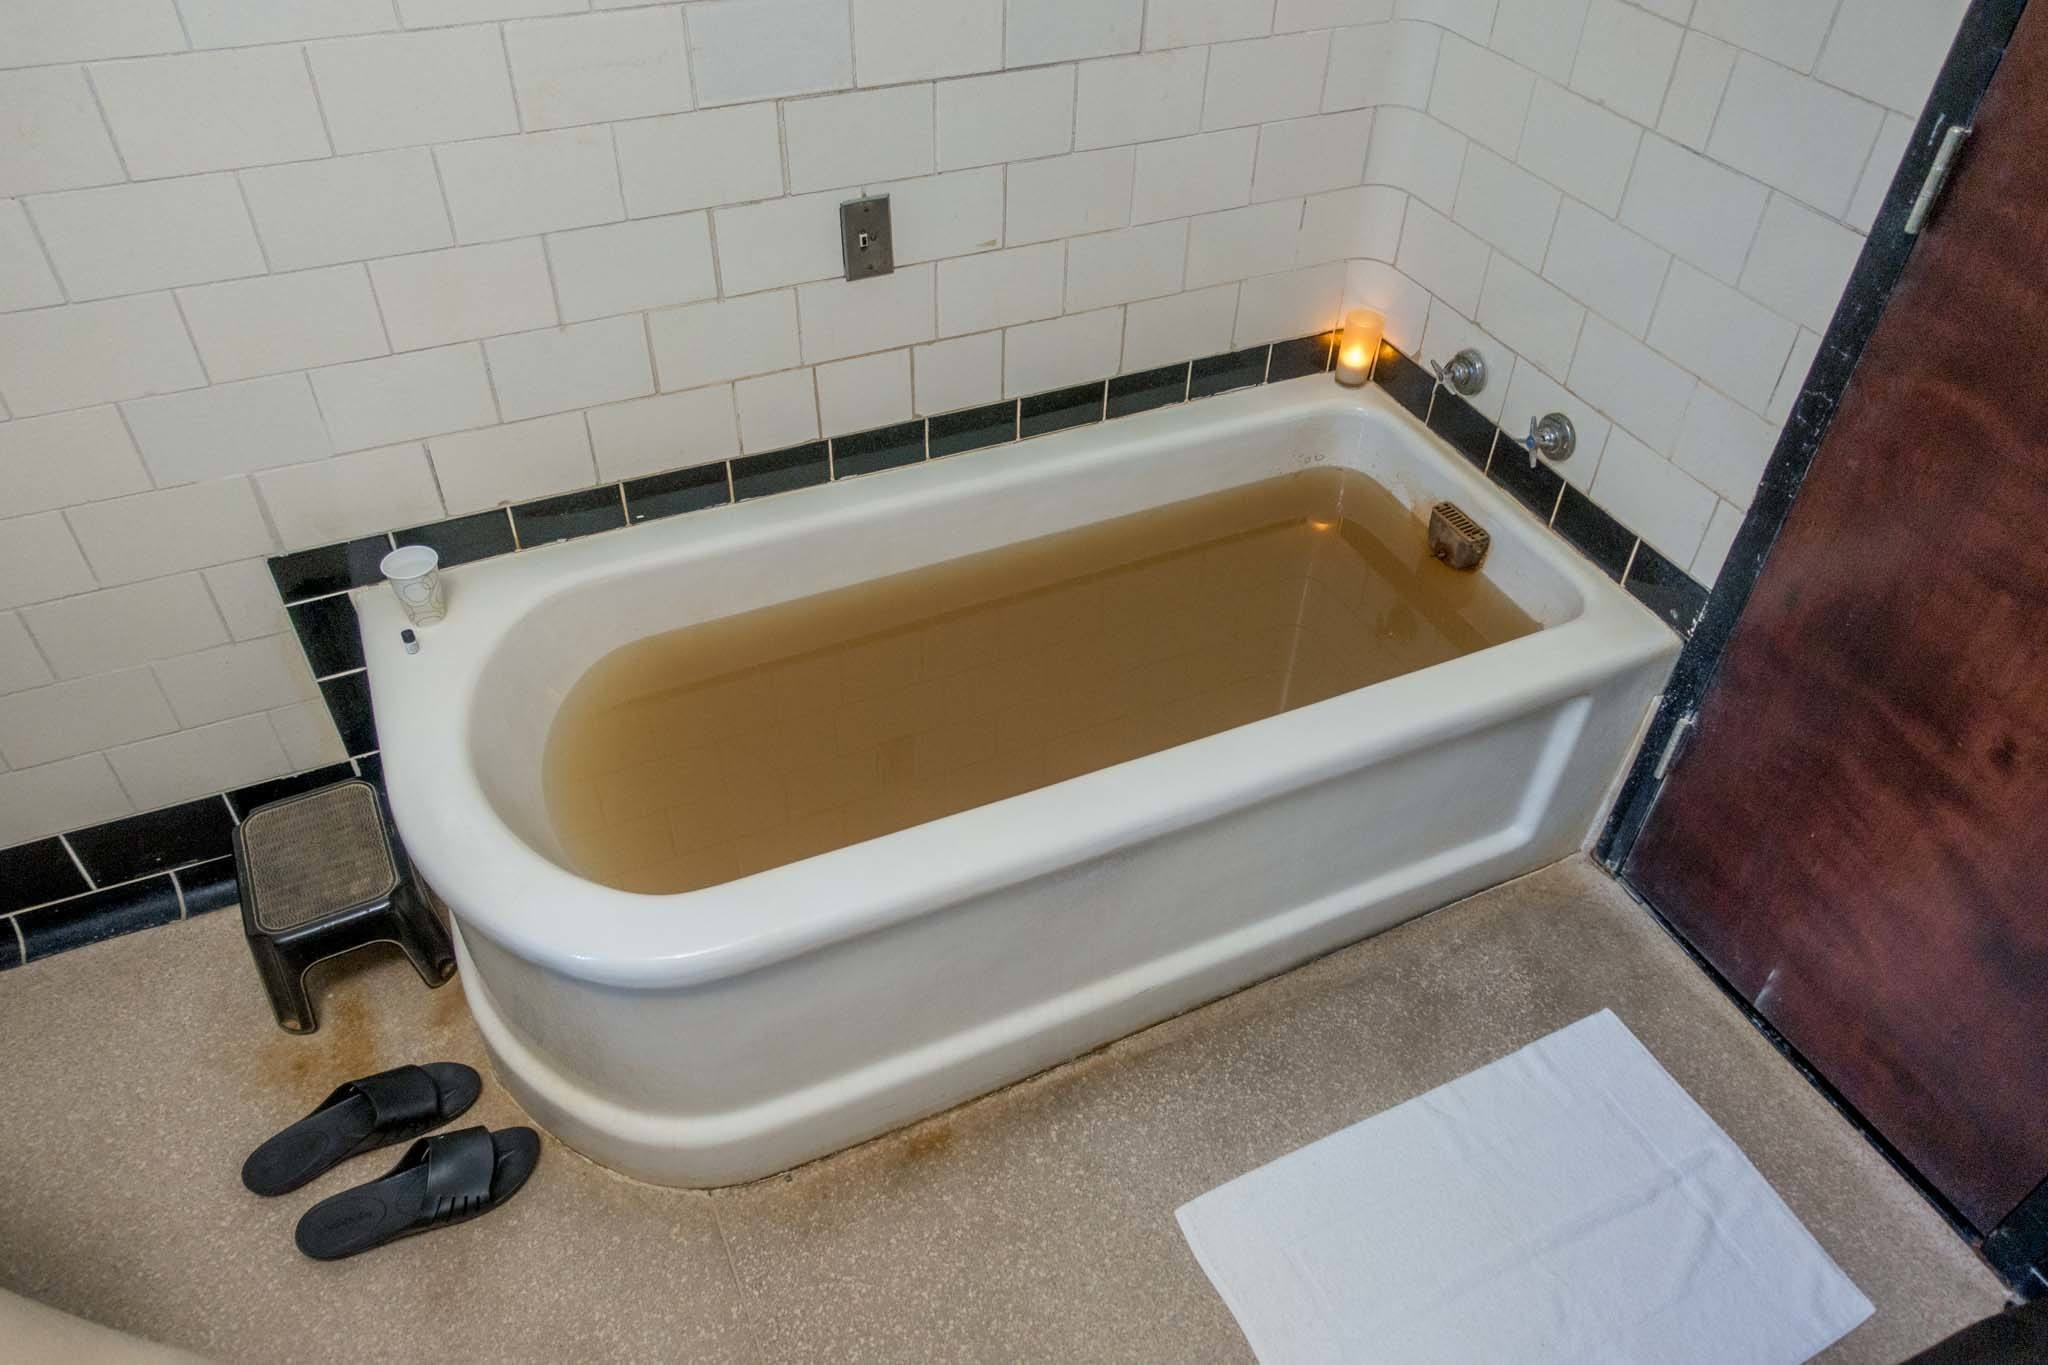 Bathtub with yellow